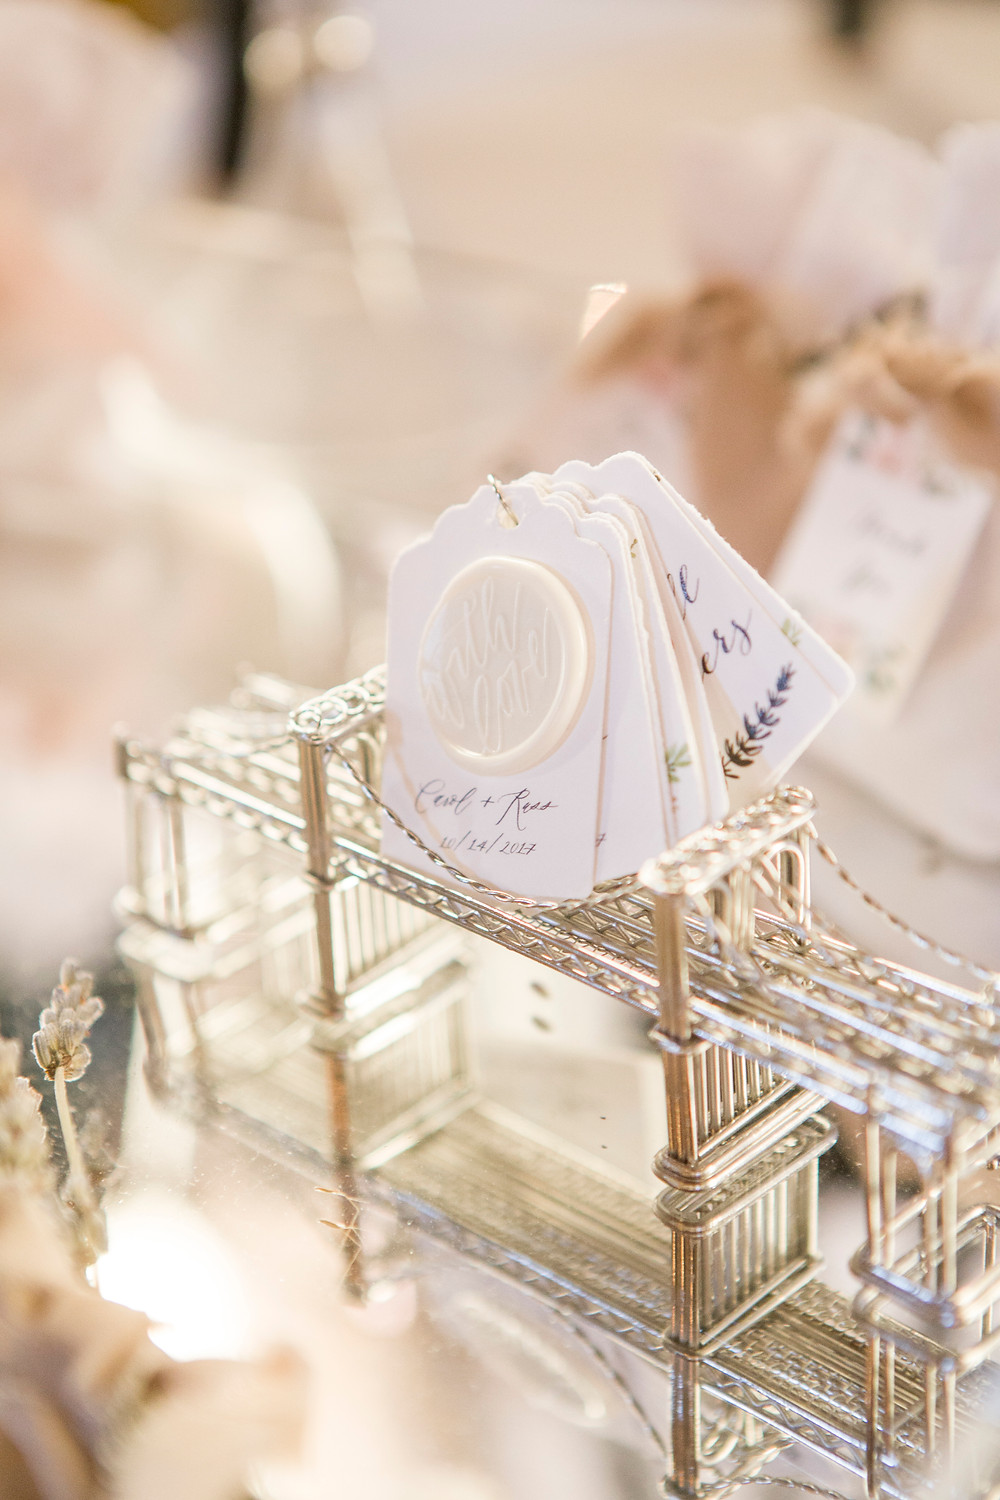 Seal Wax Tags for Wedding Favors by Flying Little Birds